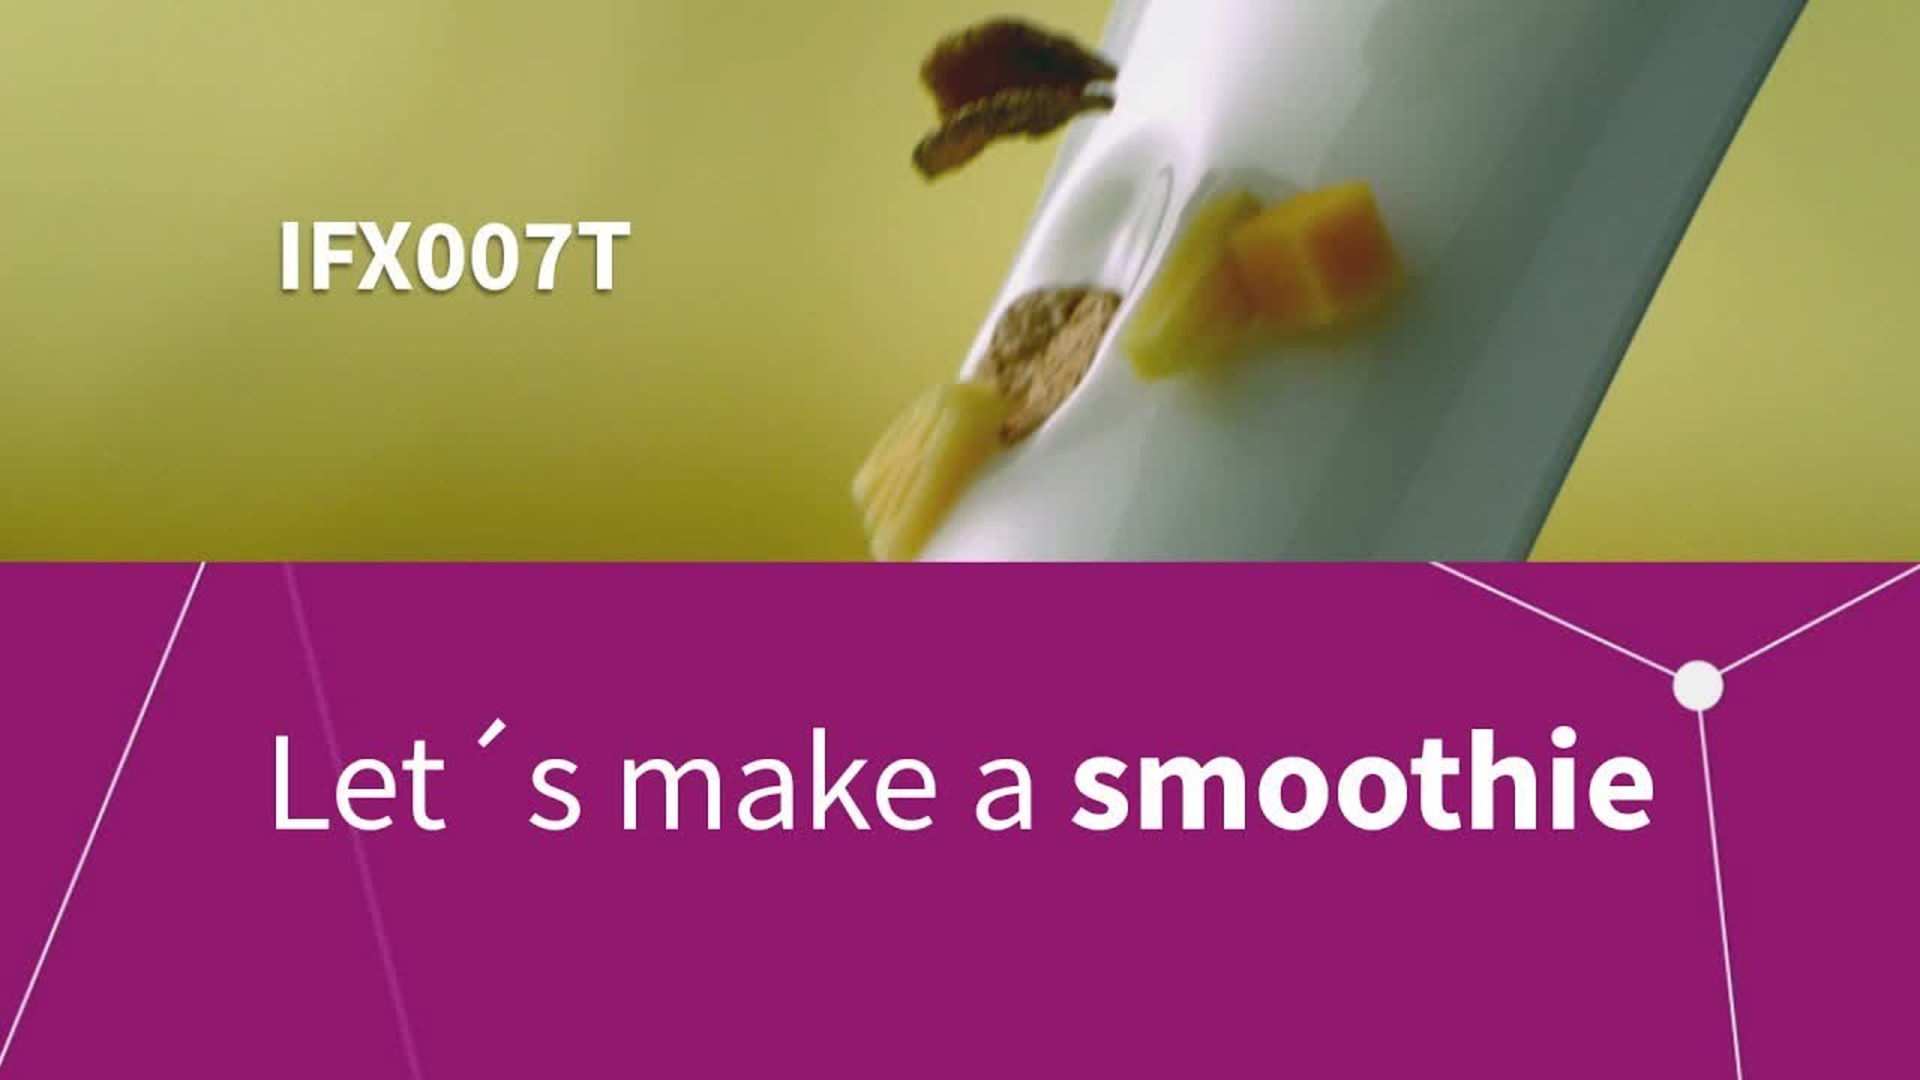 Watch to learn more: How to make a smoothie with our new Motor Driver (IFX007) for Industrial Applications